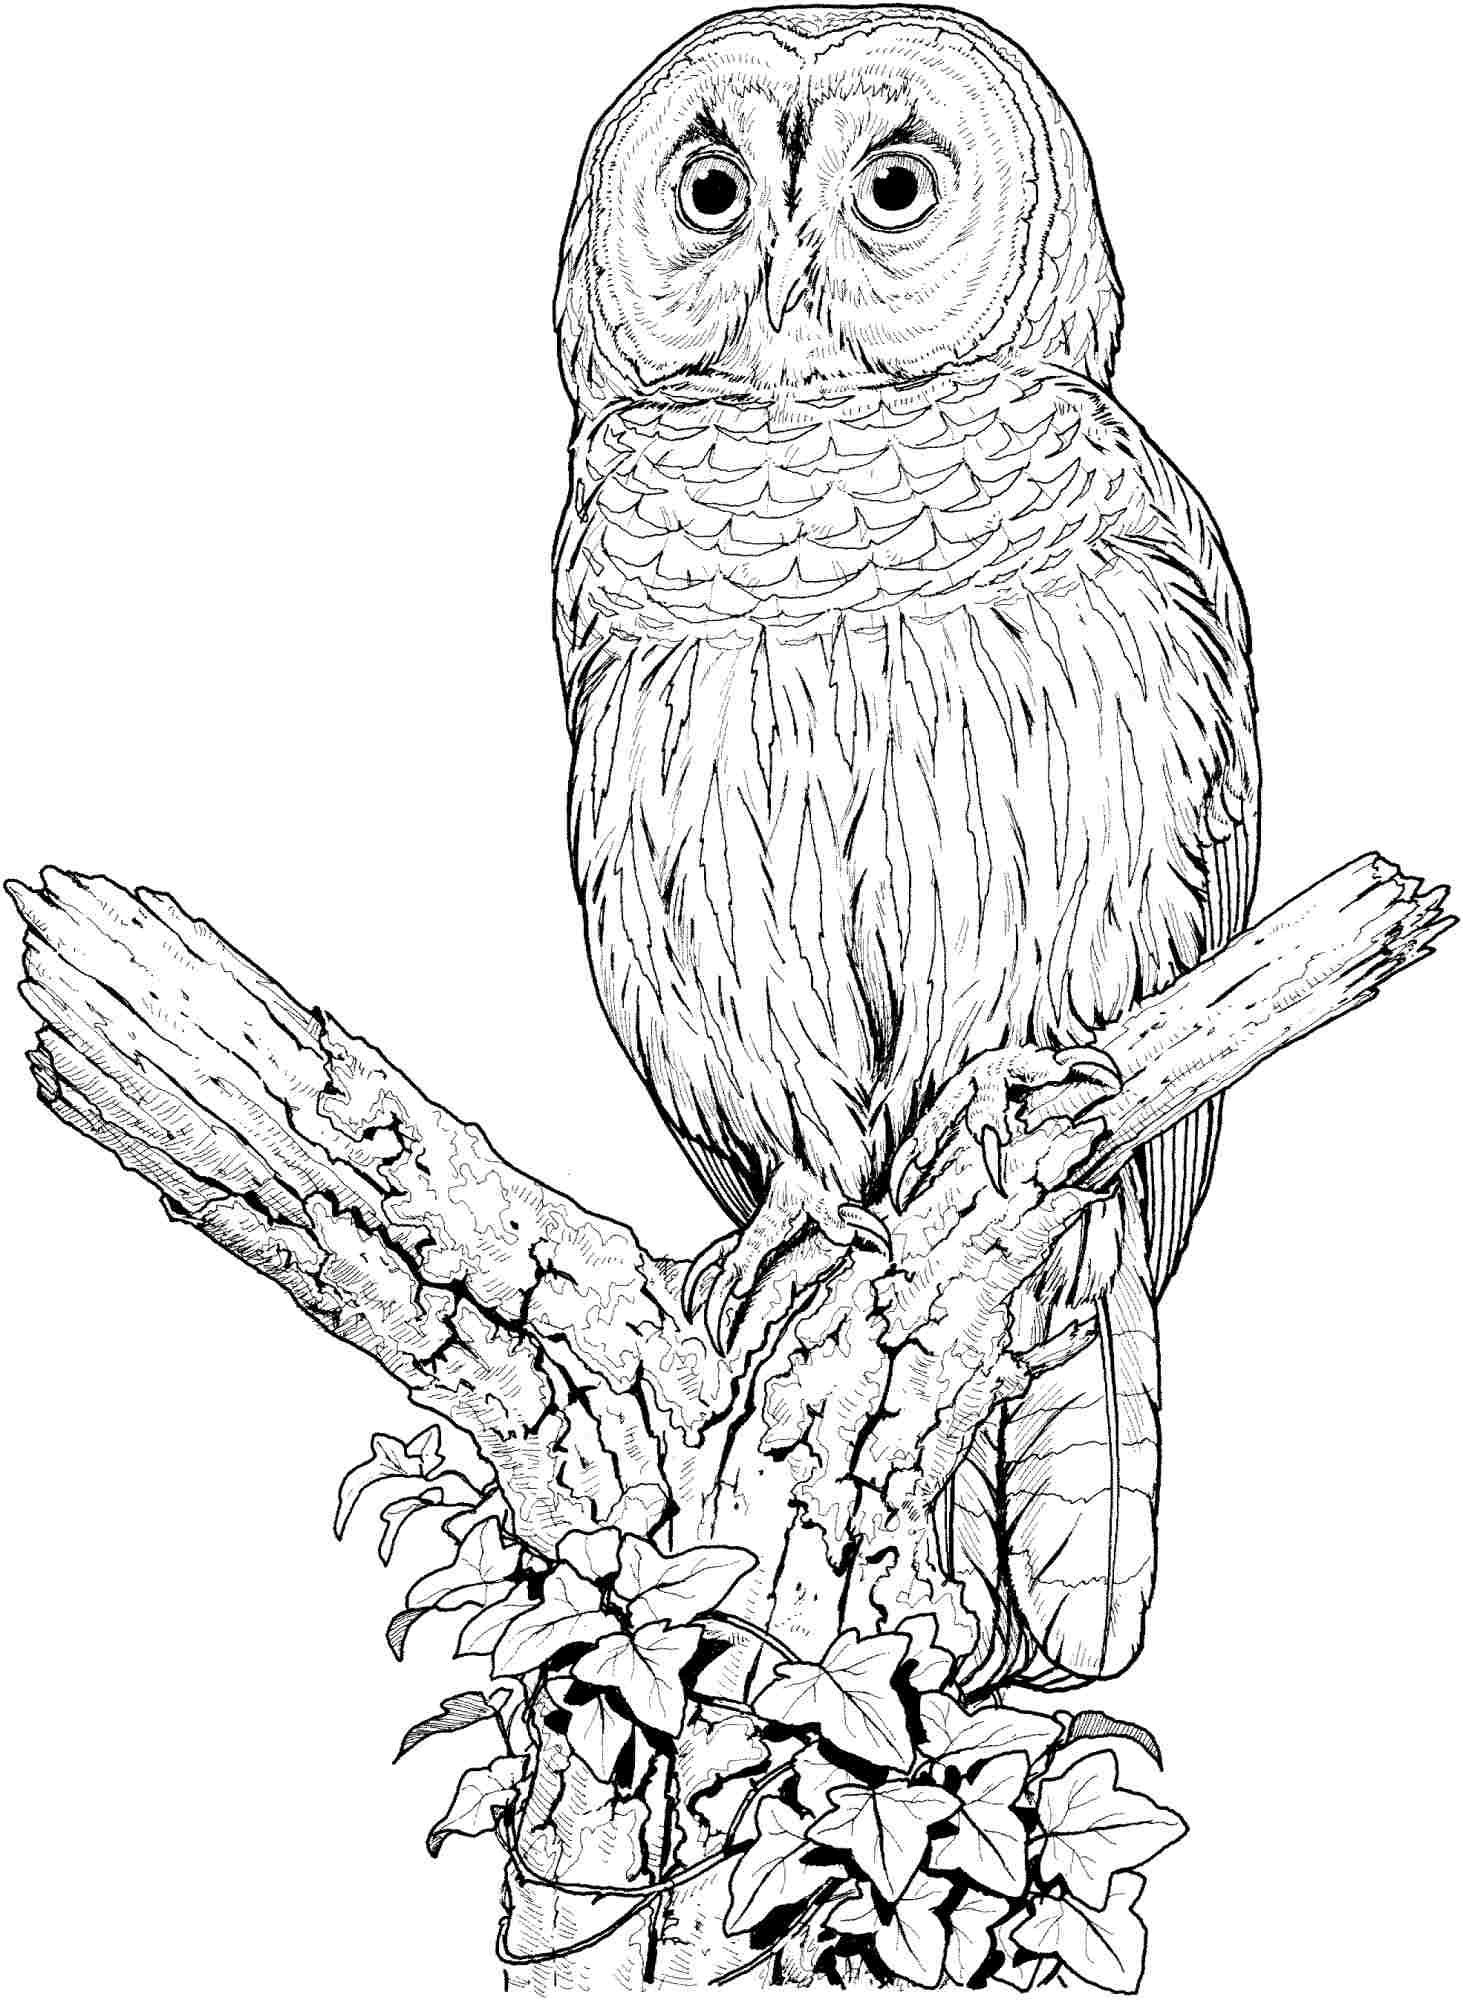 free owl printables owl coloring pages for adults free detailed owl coloring free owl printables